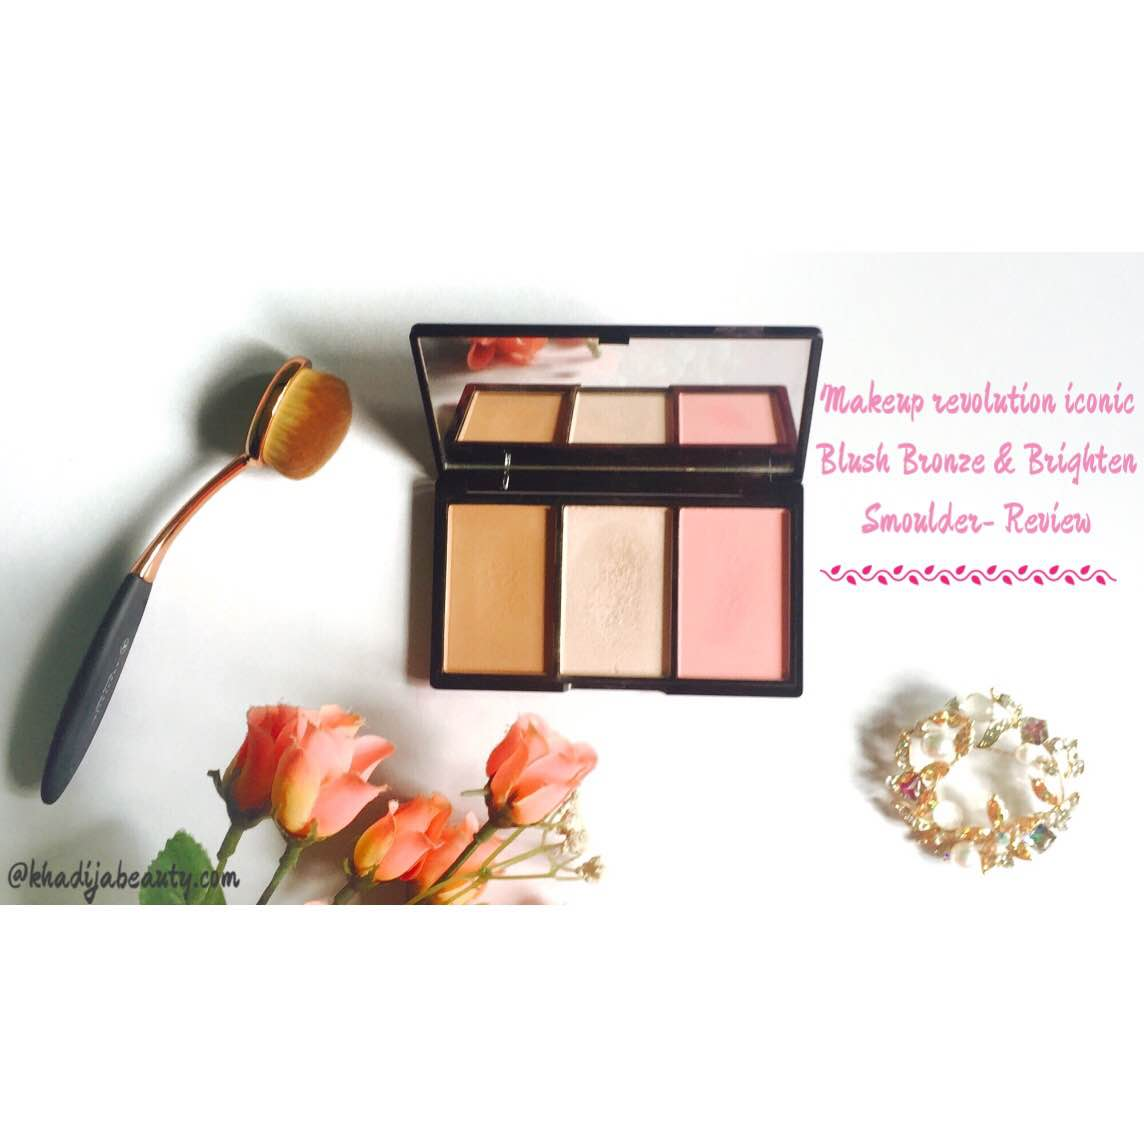 Makeup Revolution Iconic Blush Bronze and Brighten Smoulder- Review